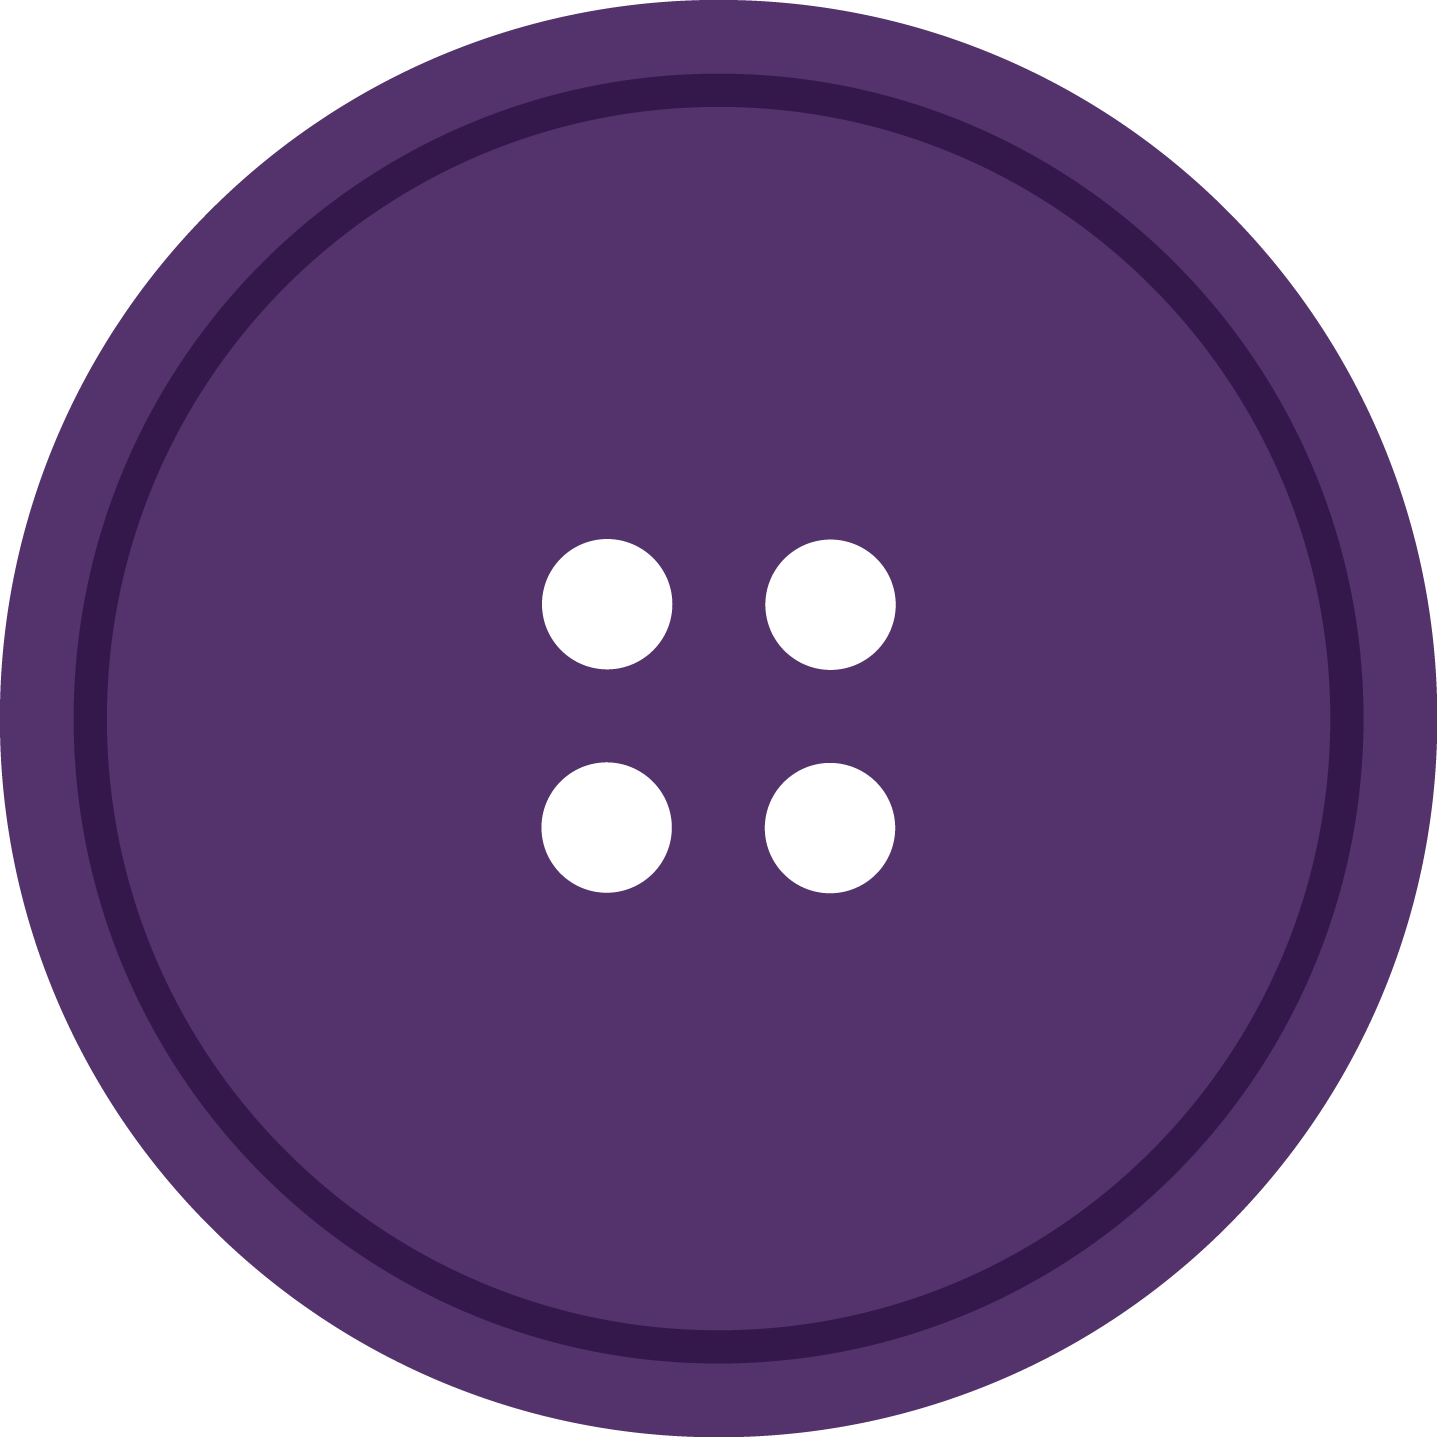 transparent library Purple round cloth with. Buttons clipart sewing button